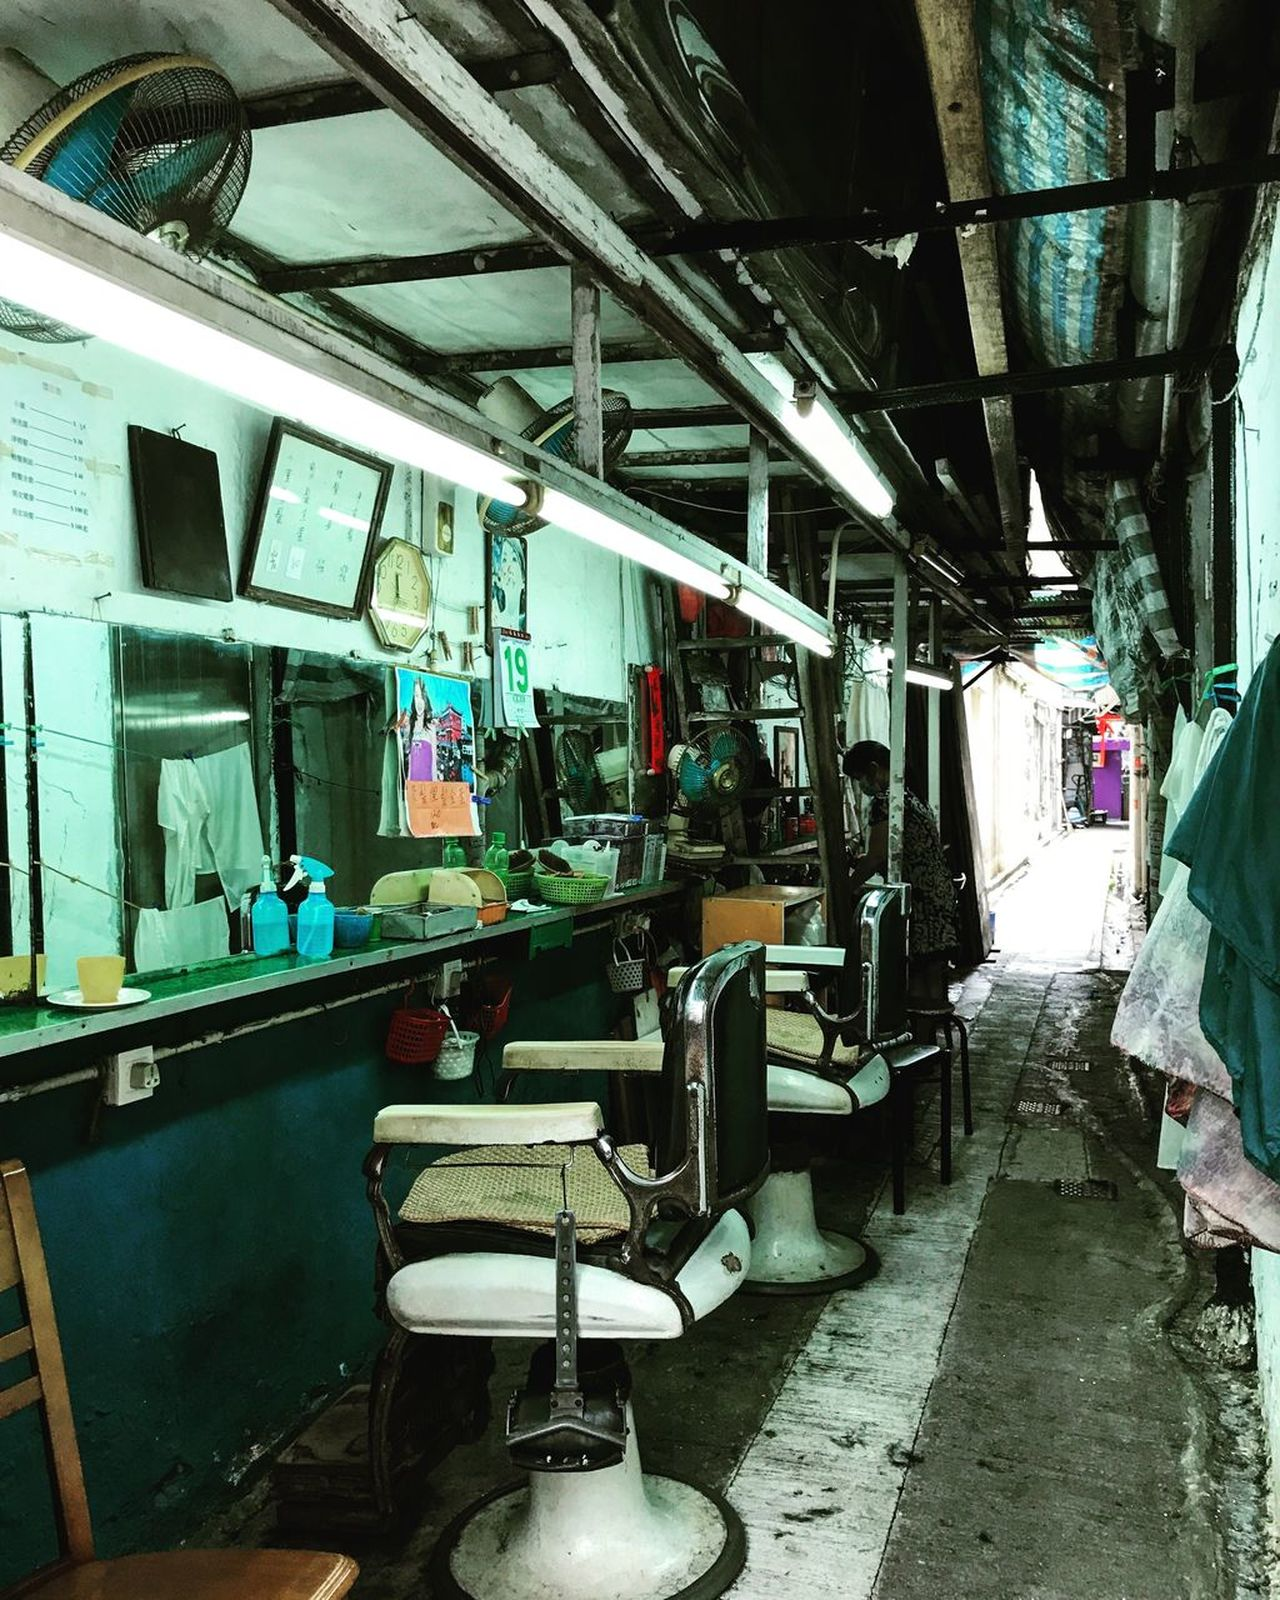 Kowloon City Cutural Day Hong Kong Hong Kong Culture Hong Kong Kowloon City Indoors  No People Salon Train - Vehicle Transportation Vehicle Seat